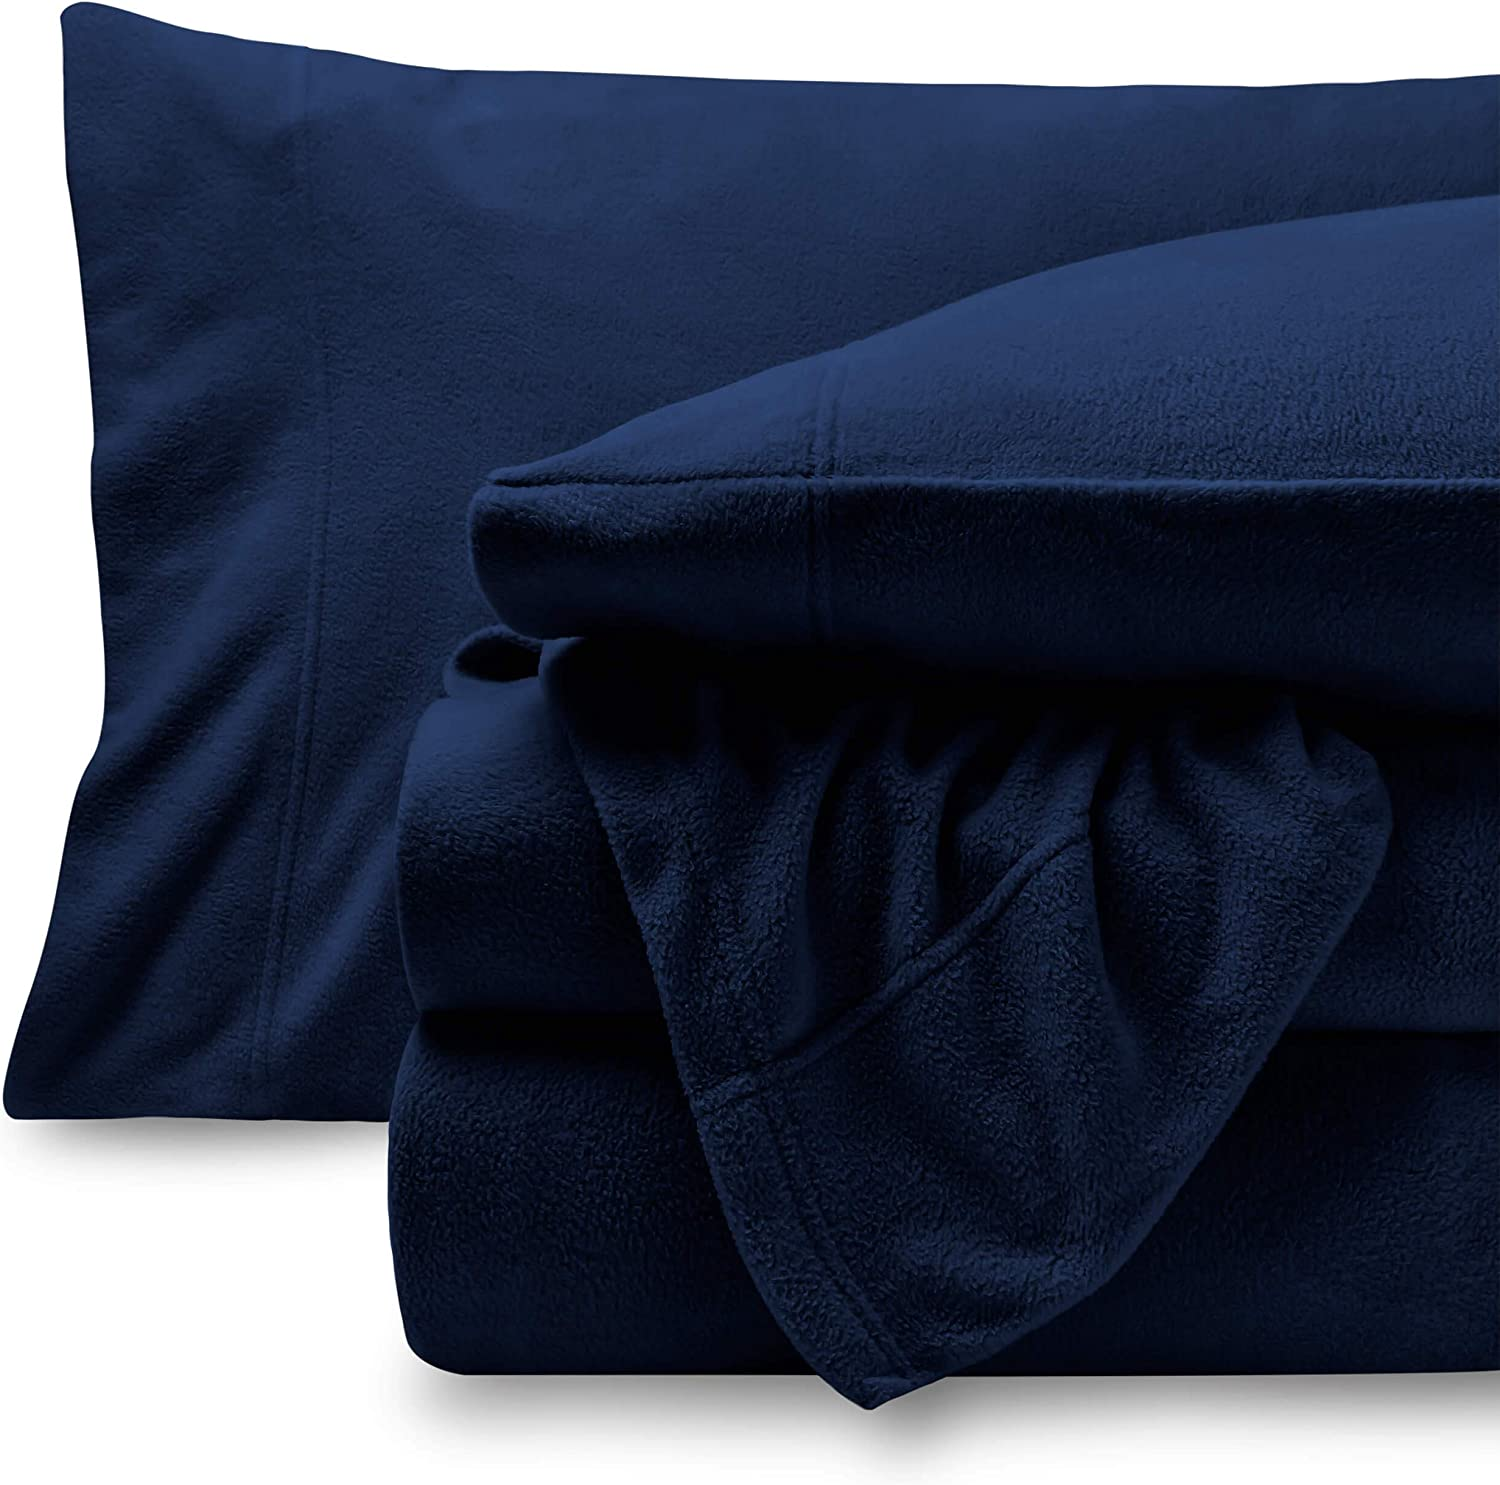 Bare Home Super Soft Fleece Sheet Set - Twin Extra Long Size - Extra Plush Polar Fleece, Pill-Resistant Bed Sheets - All Season Cozy Warmth, Breathable & Hypoallergenic (Twin XL, Dark Blue)